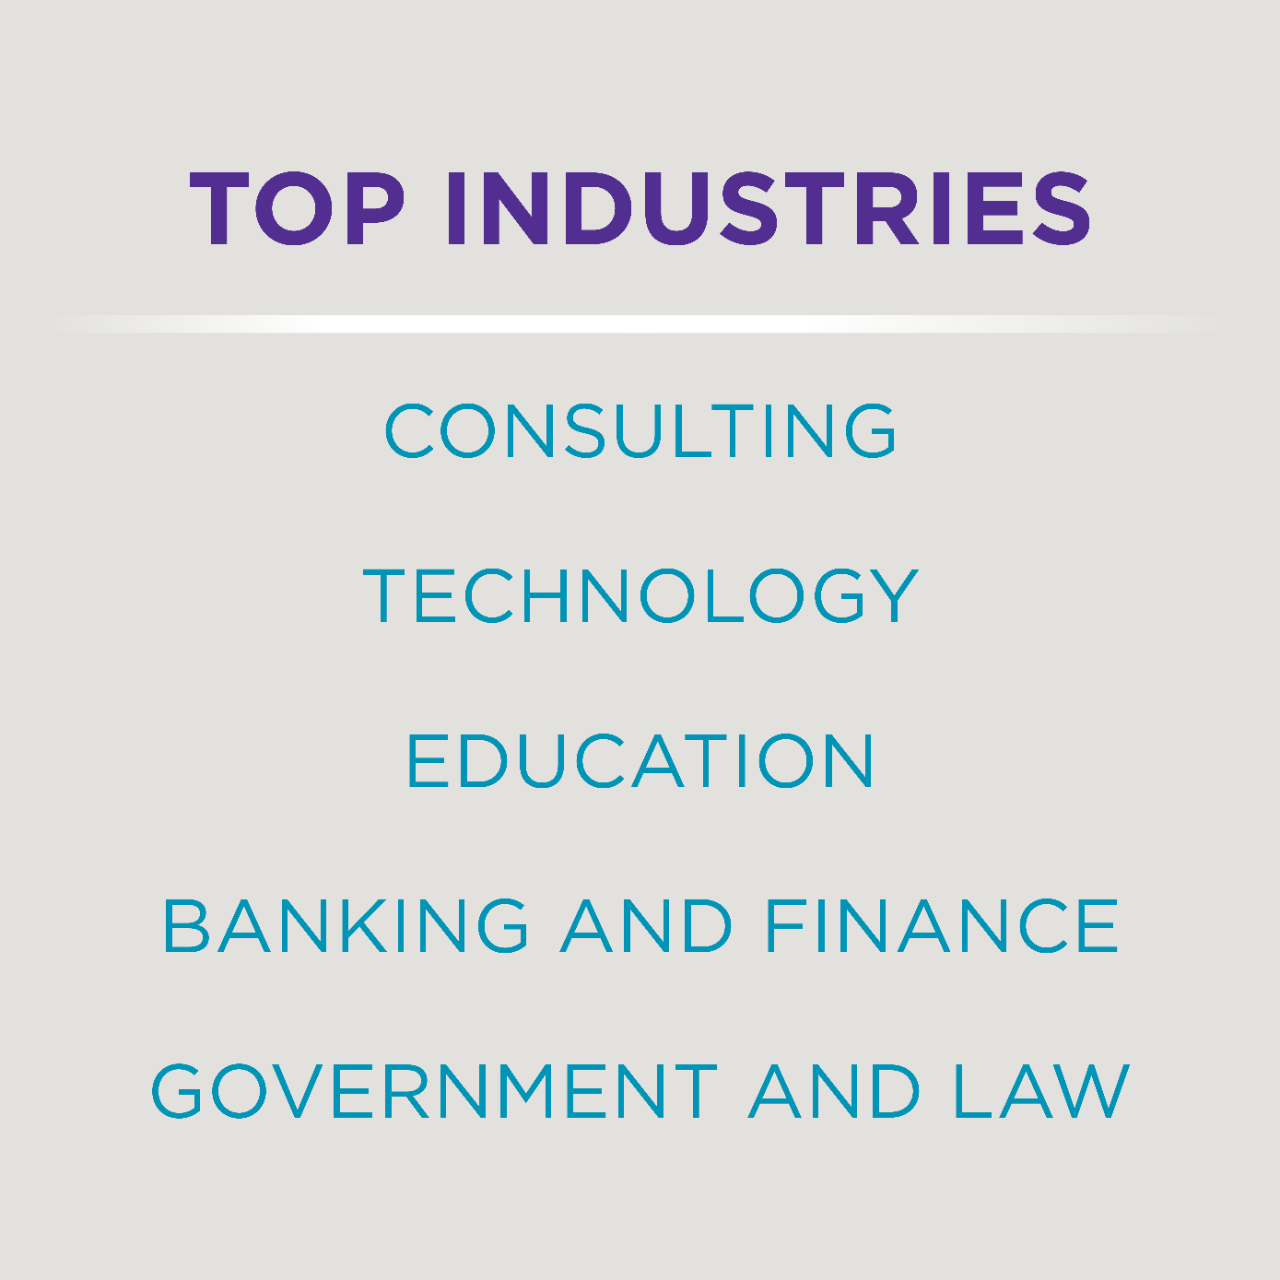 Top industries: consulting, technology, education, banking and finance, government and law.